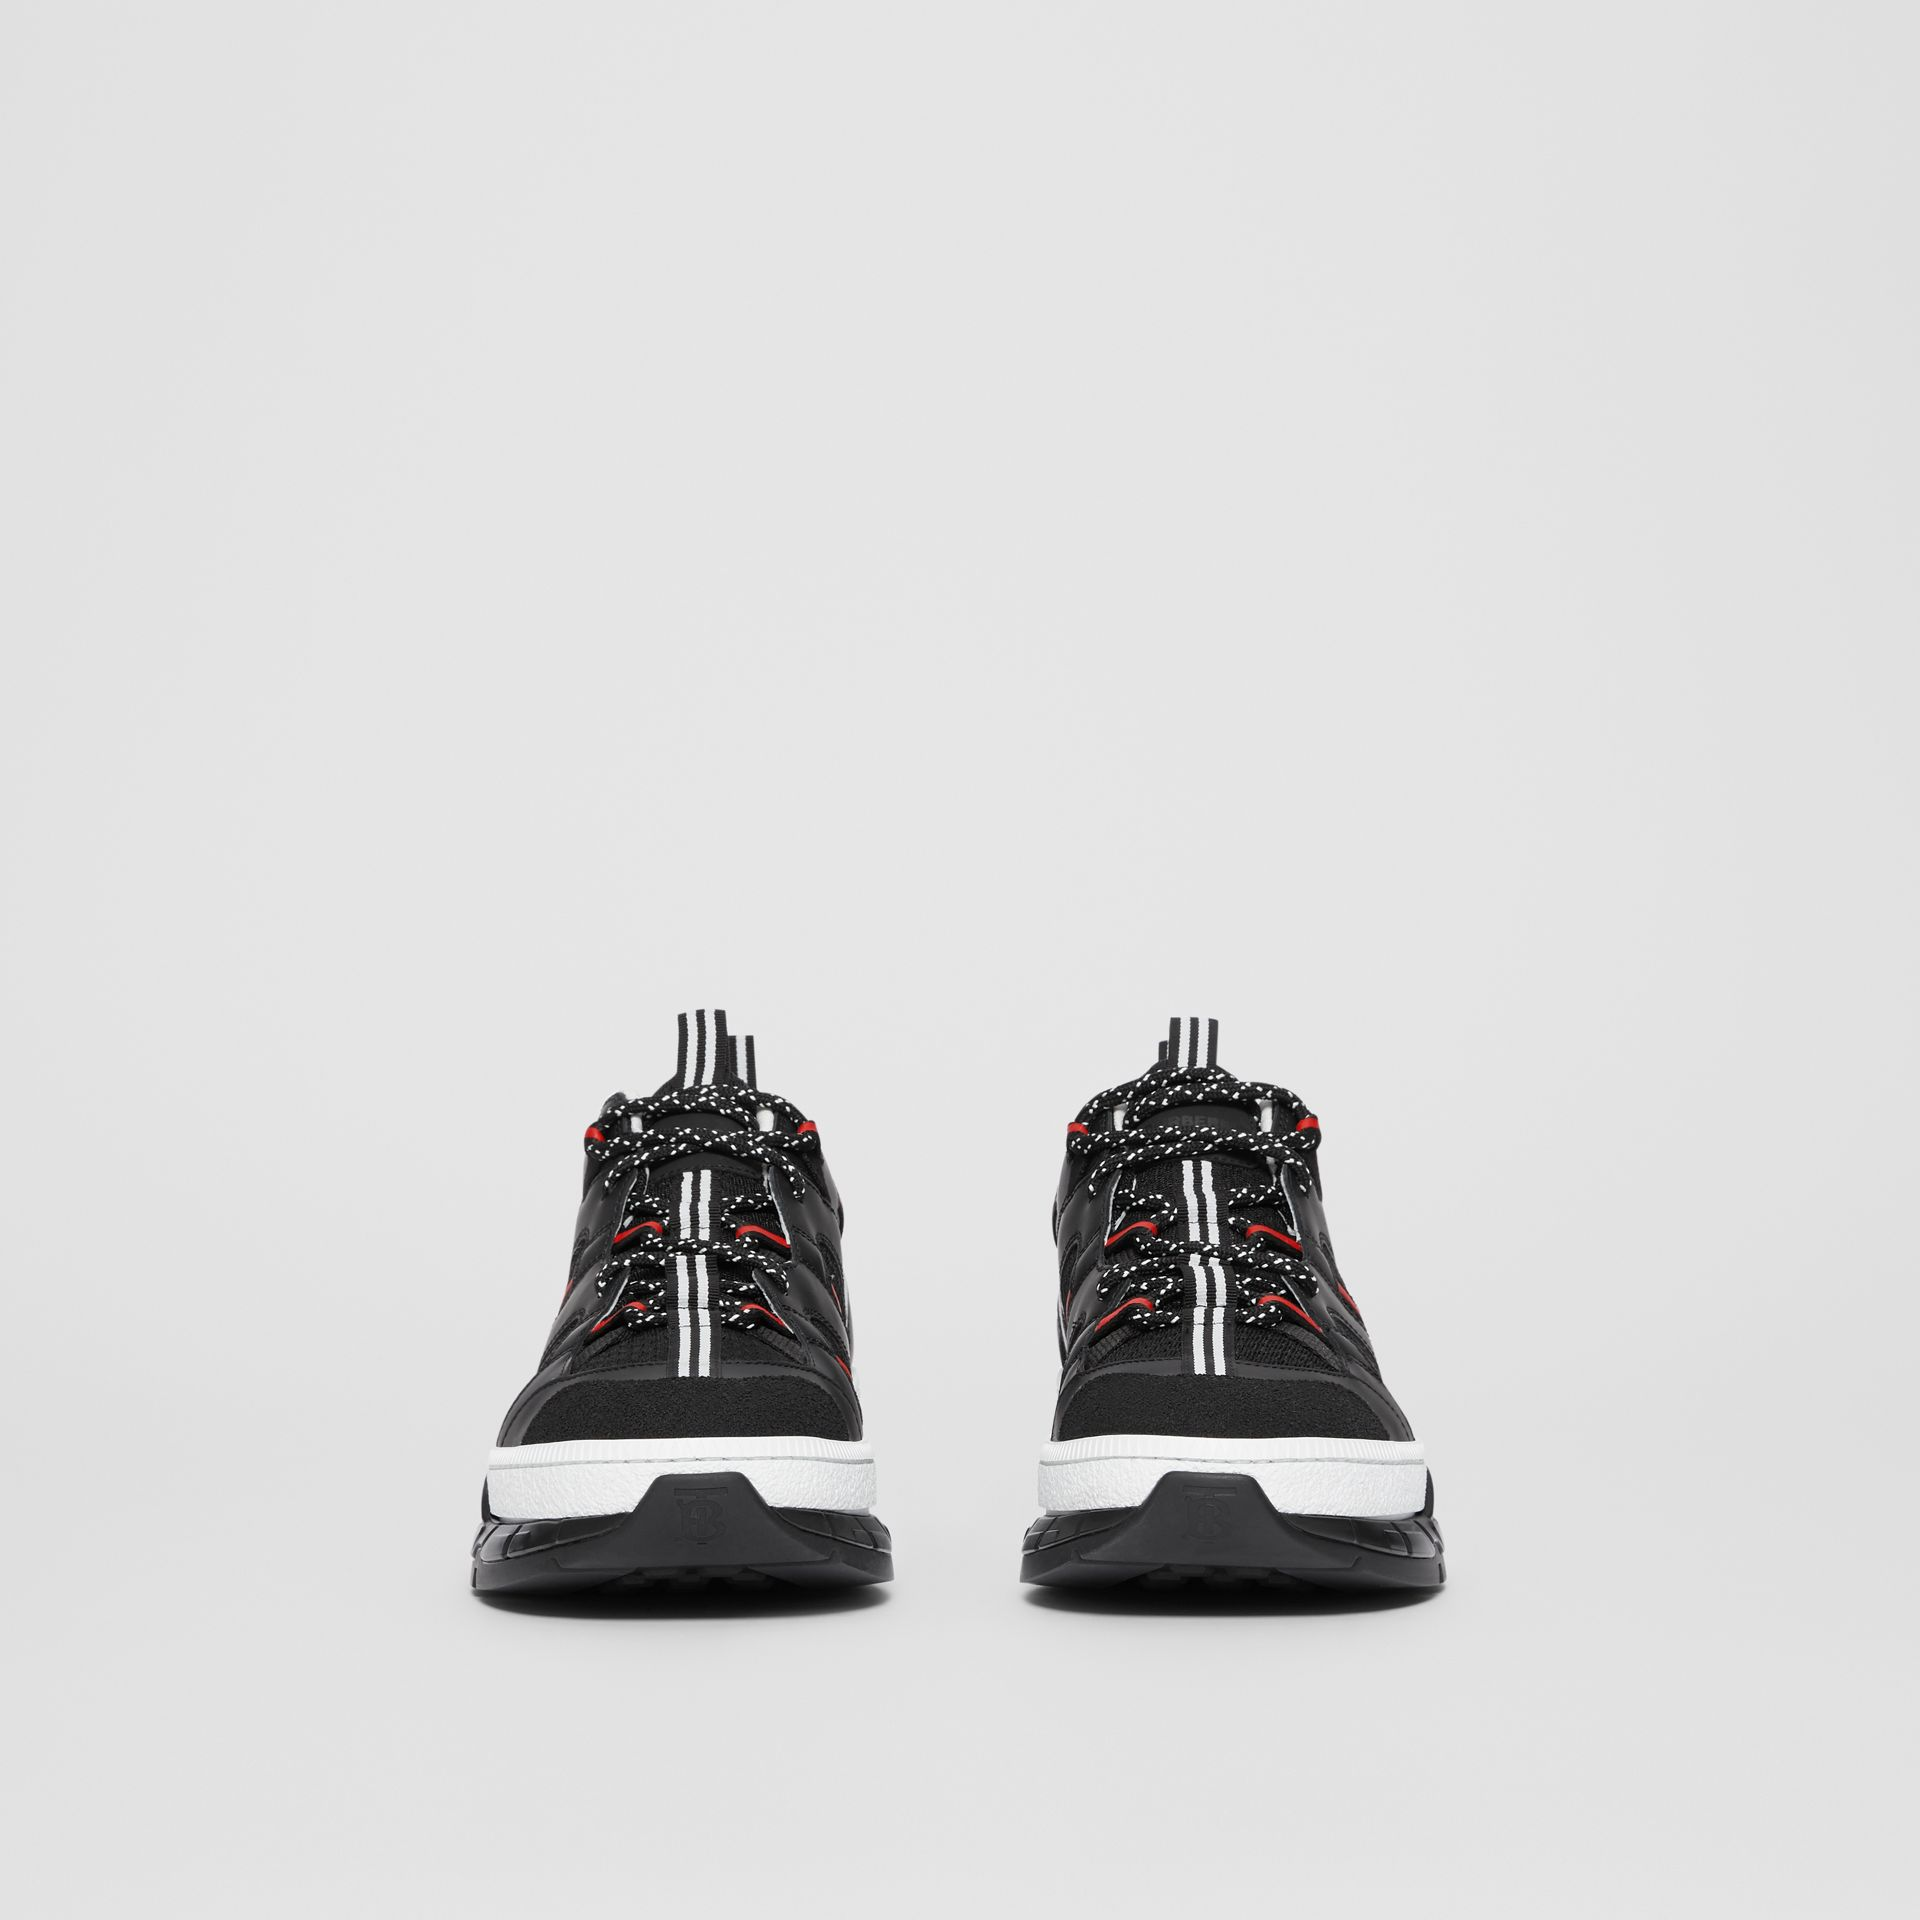 Sneakers Union en filet et nubuck (Noir/rouge) - Homme | Burberry - photo de la galerie 3